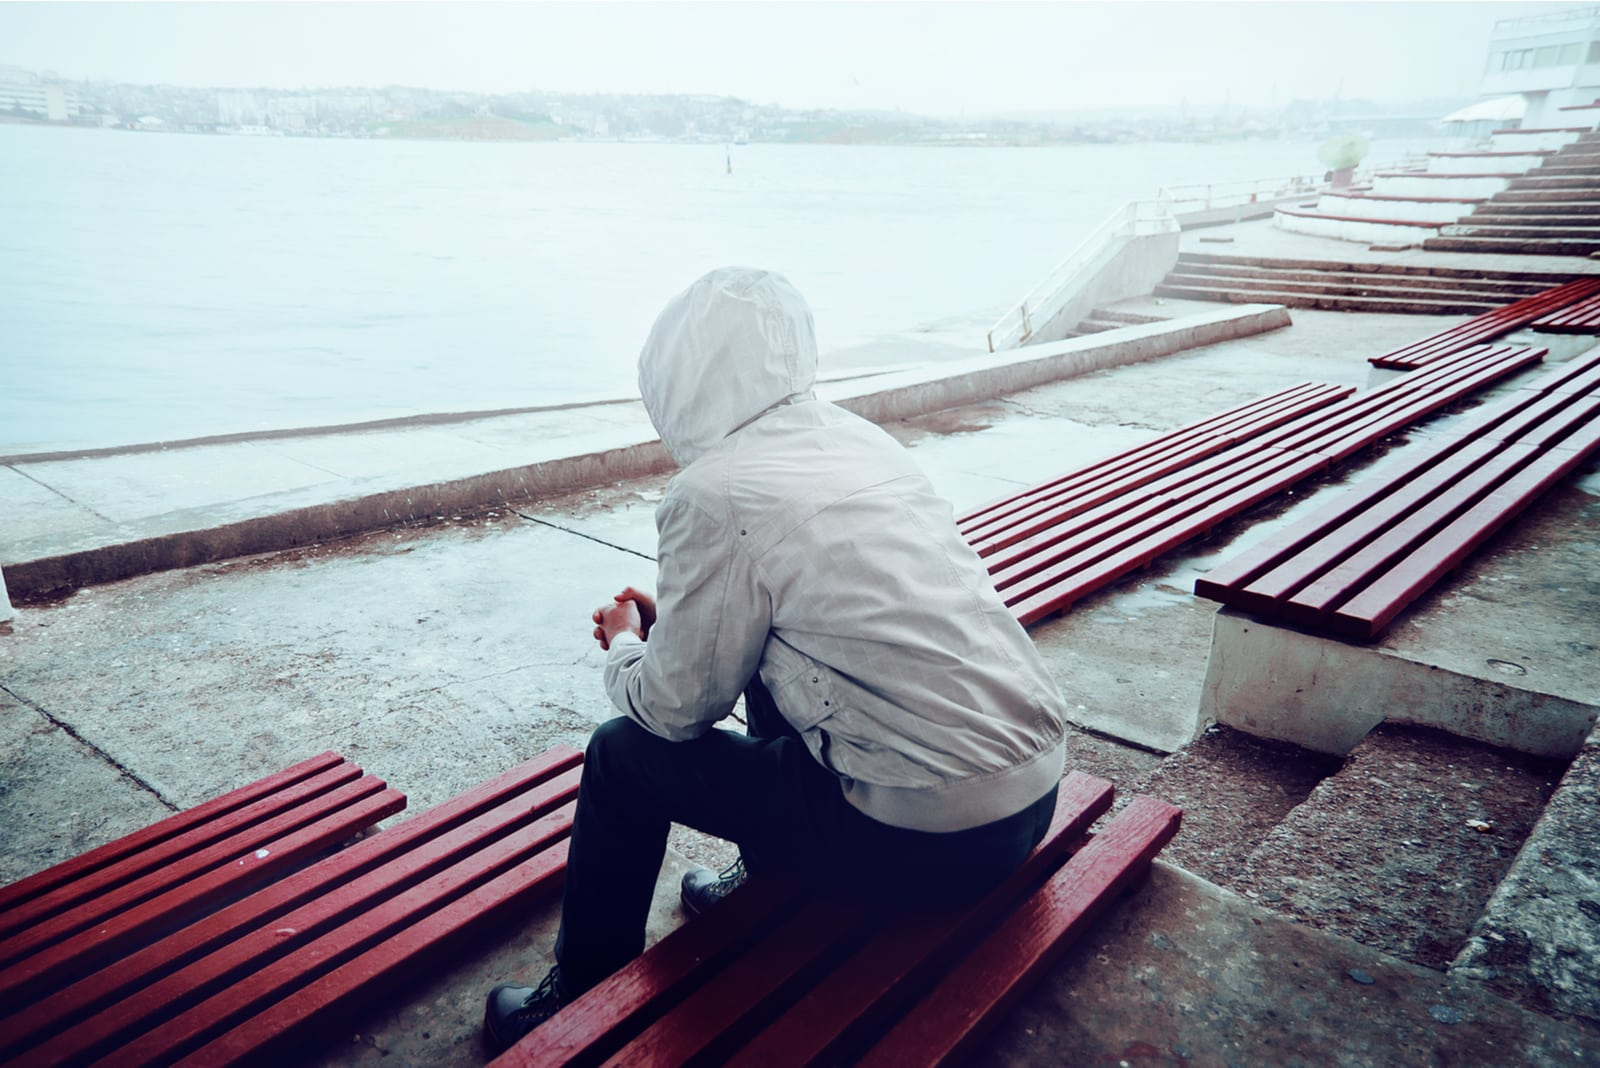 the man is sitting on a bench with his back turned